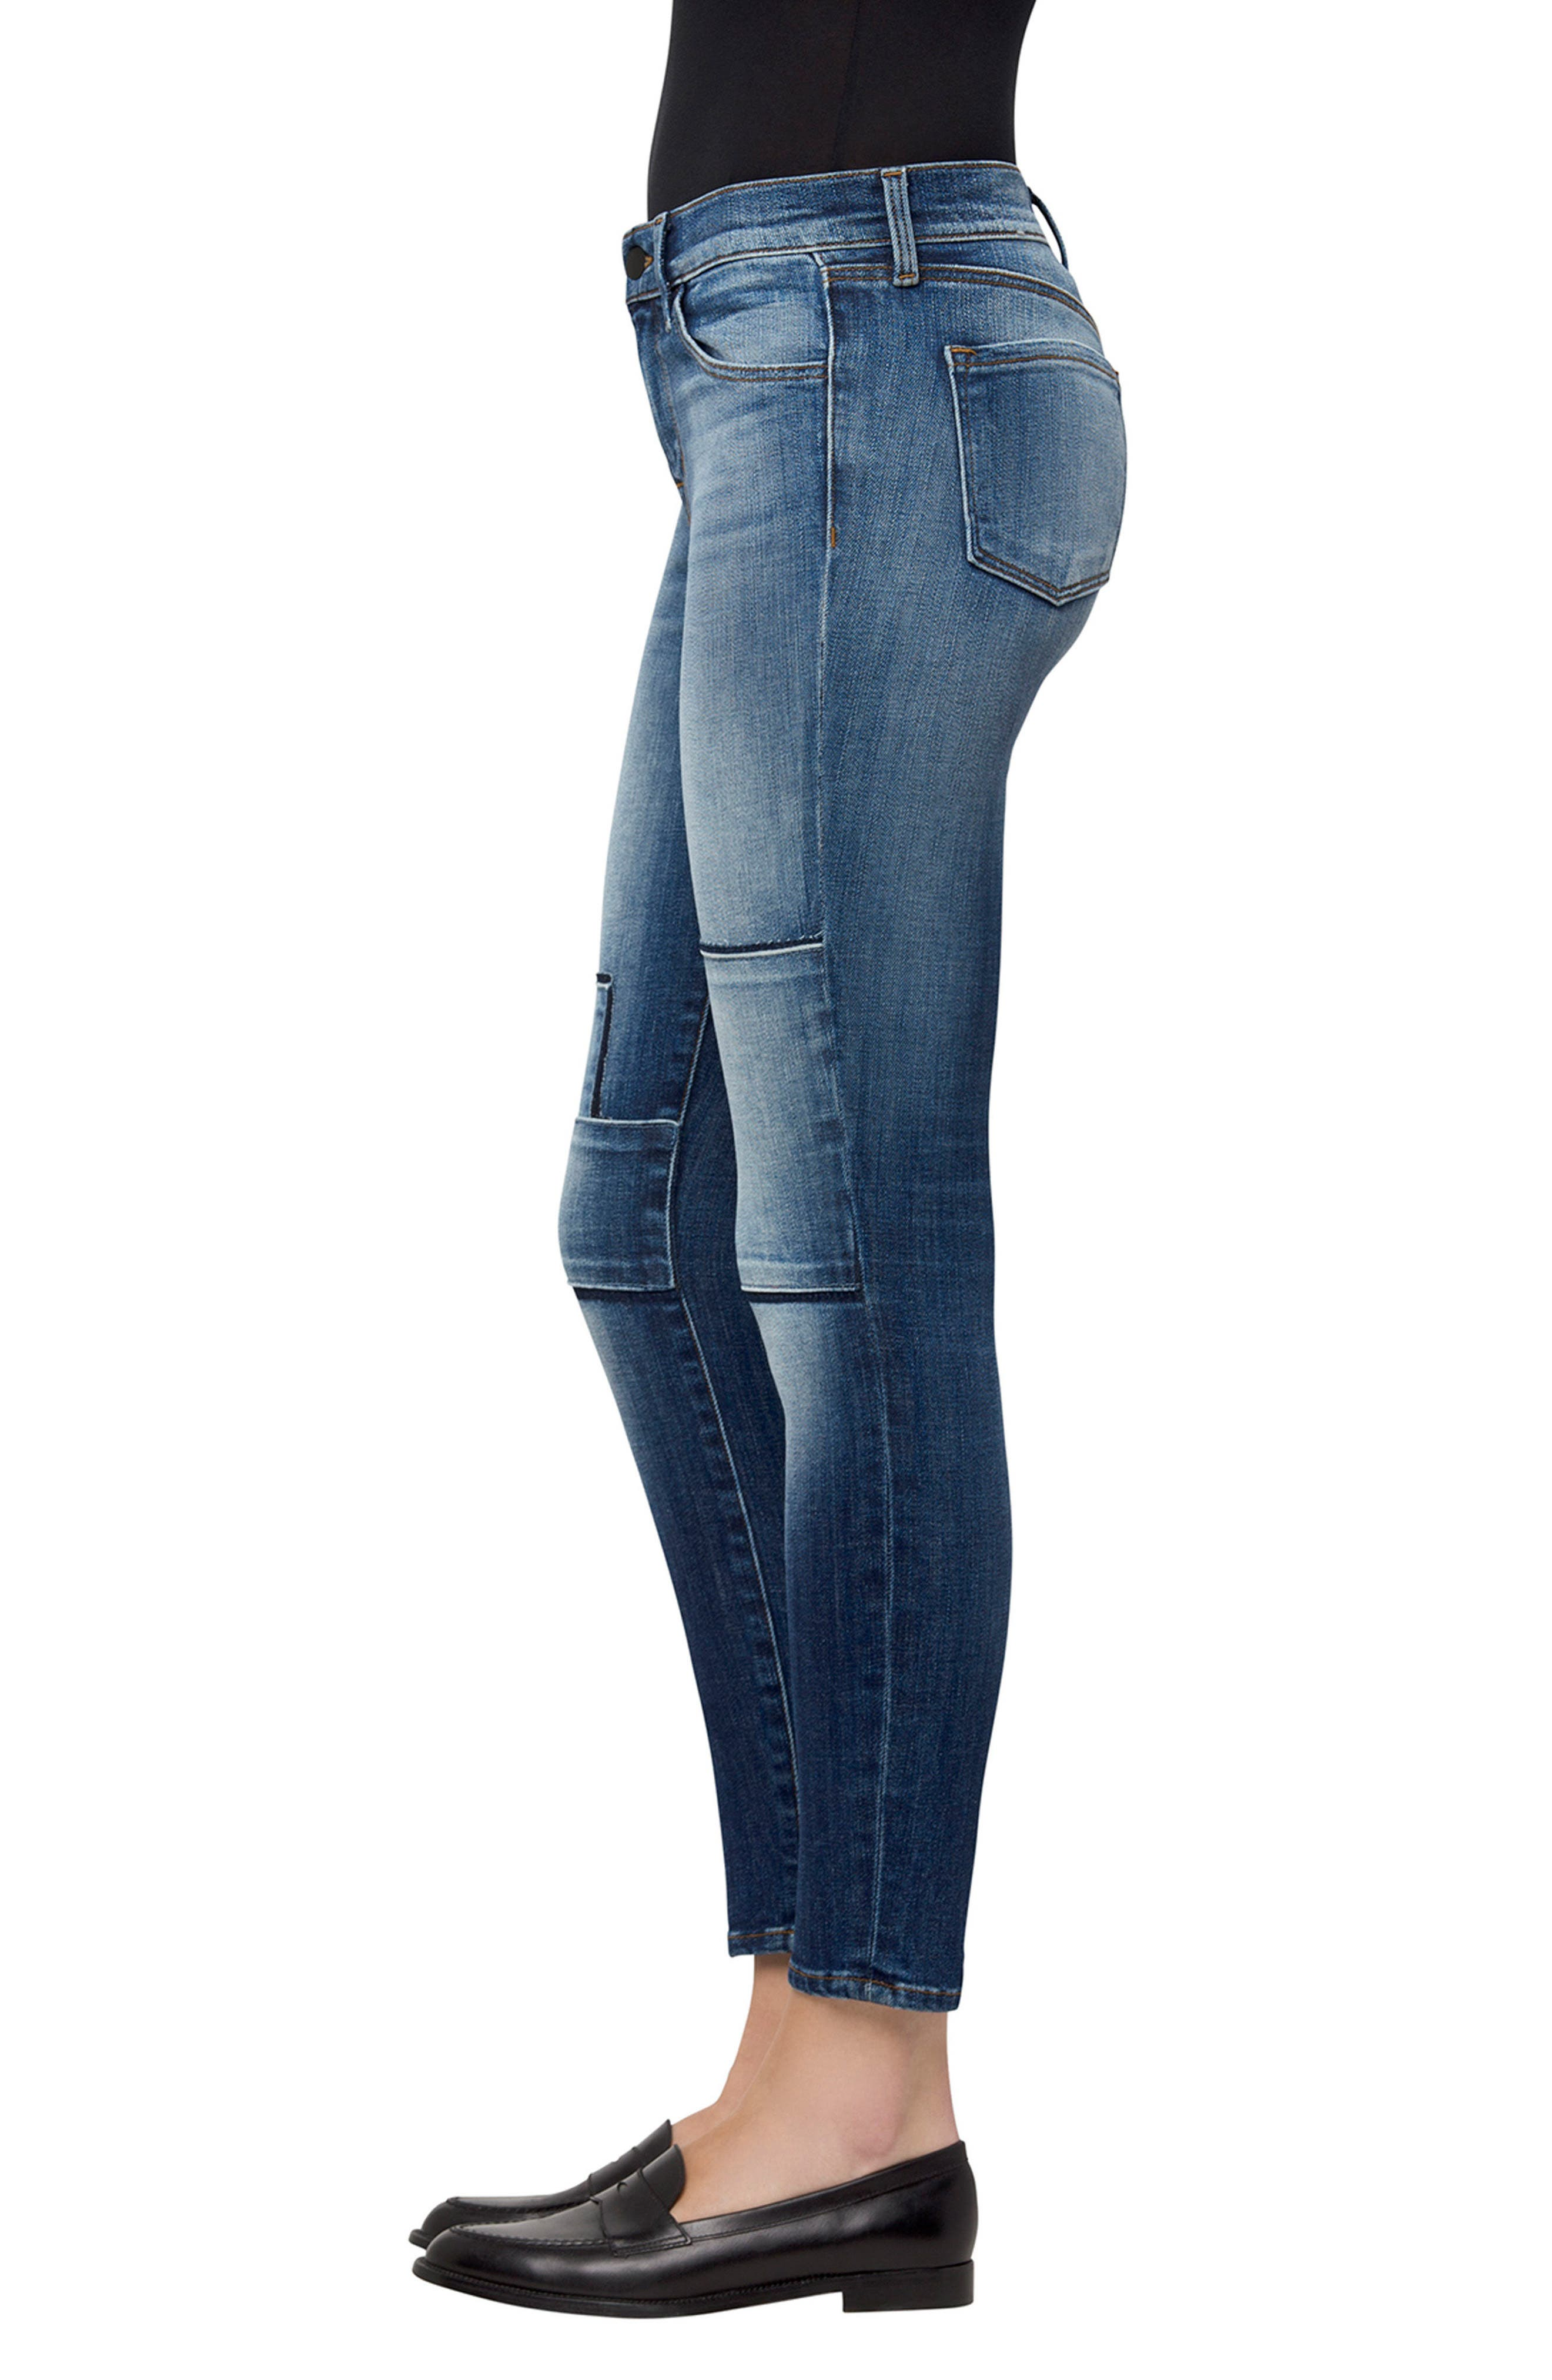 835 Crop Skinny Jeans,                             Alternate thumbnail 3, color,                             401